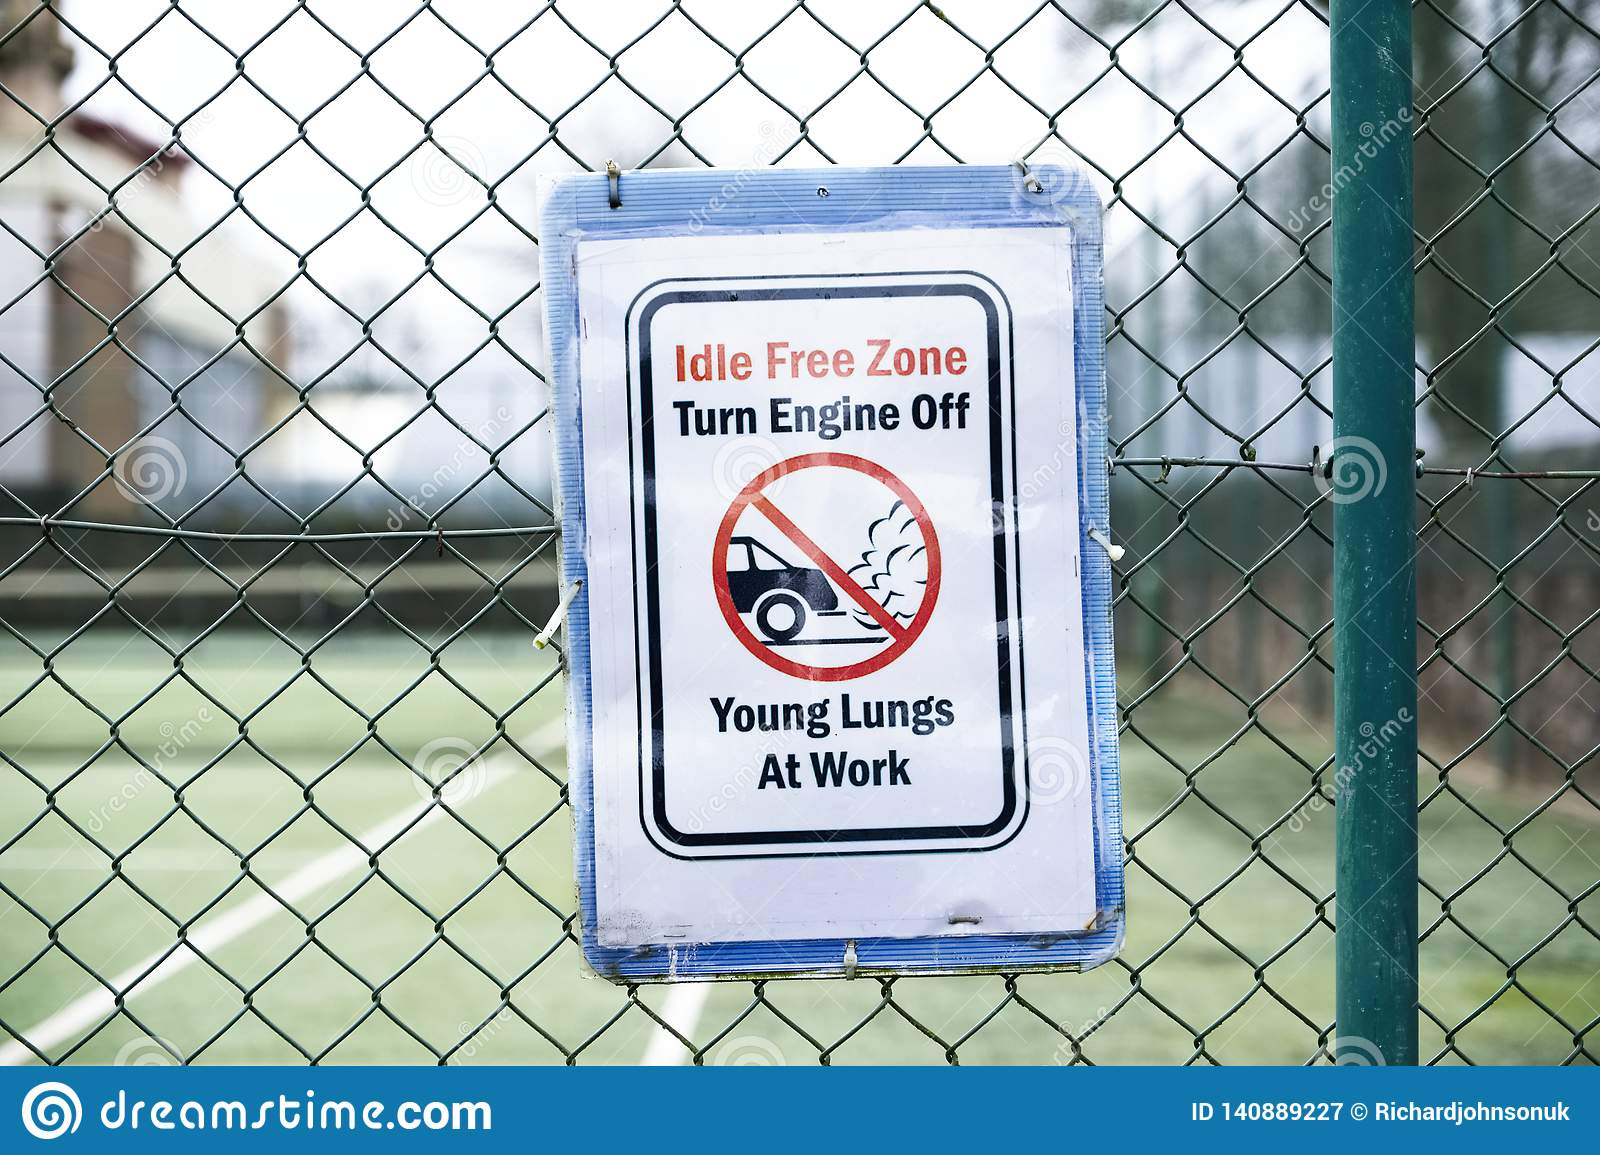 No vehicle idle idling emissions pollution young lungs at play sign outside school